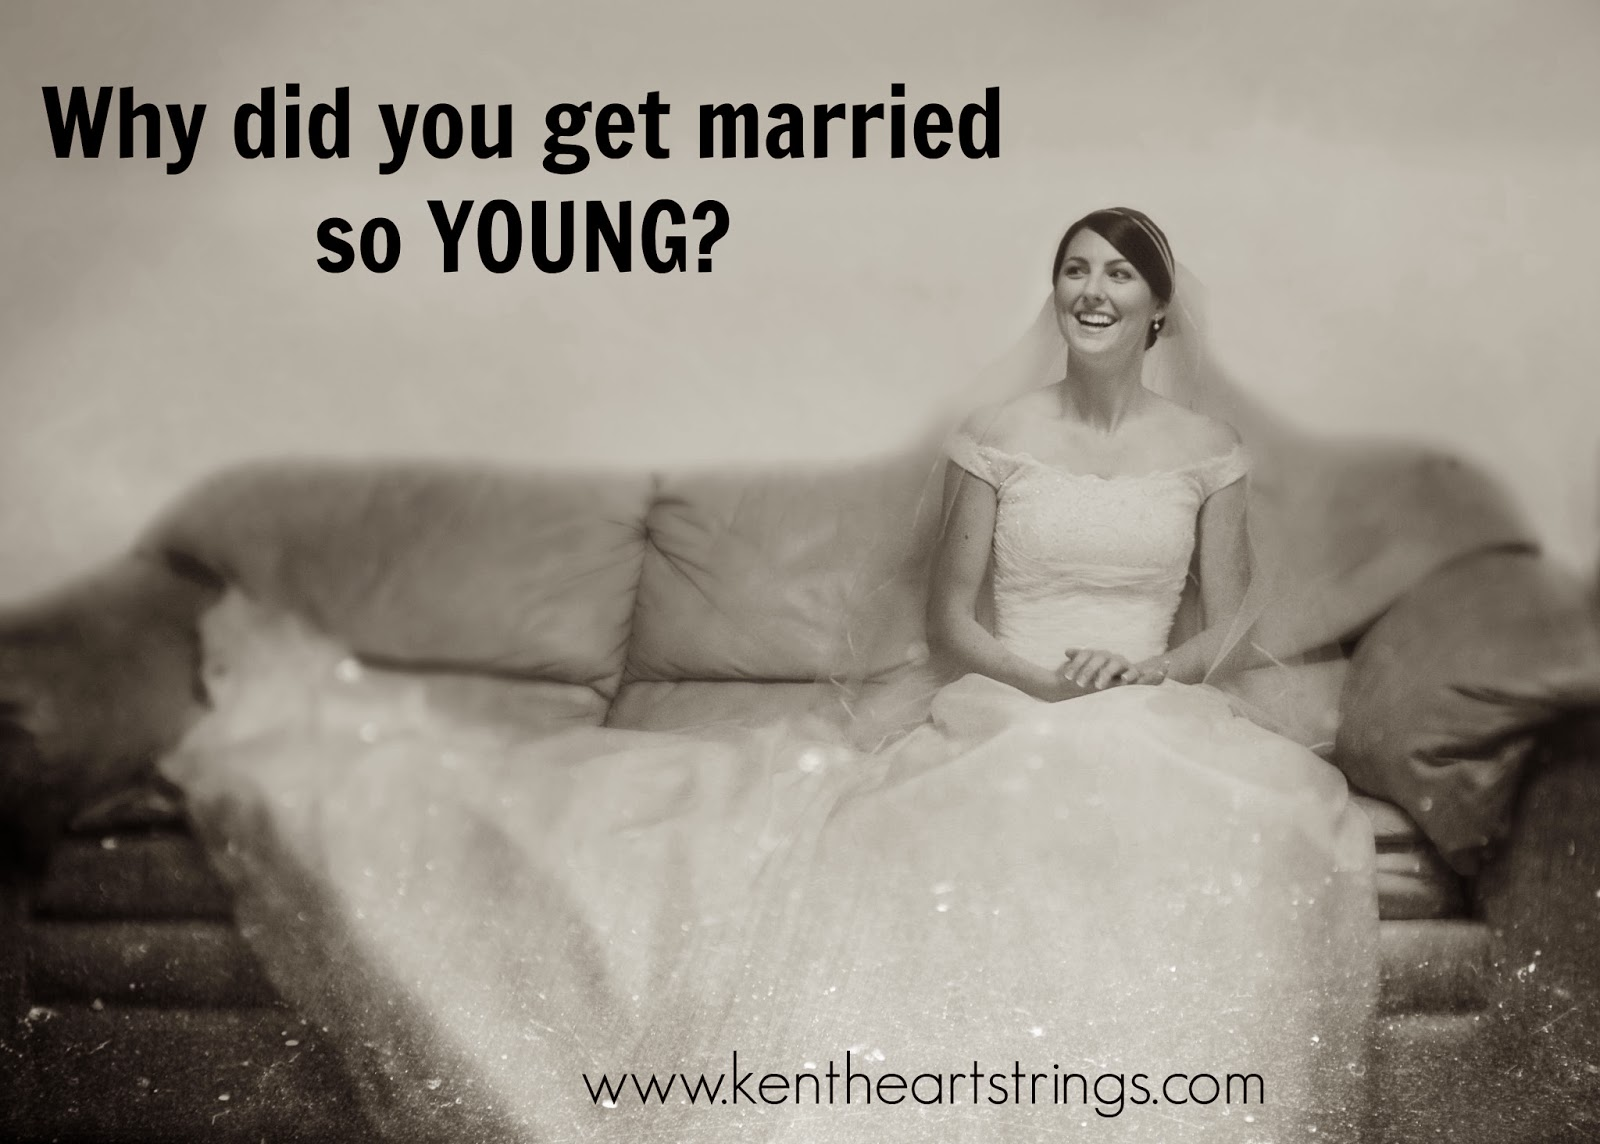 Why did you get married?